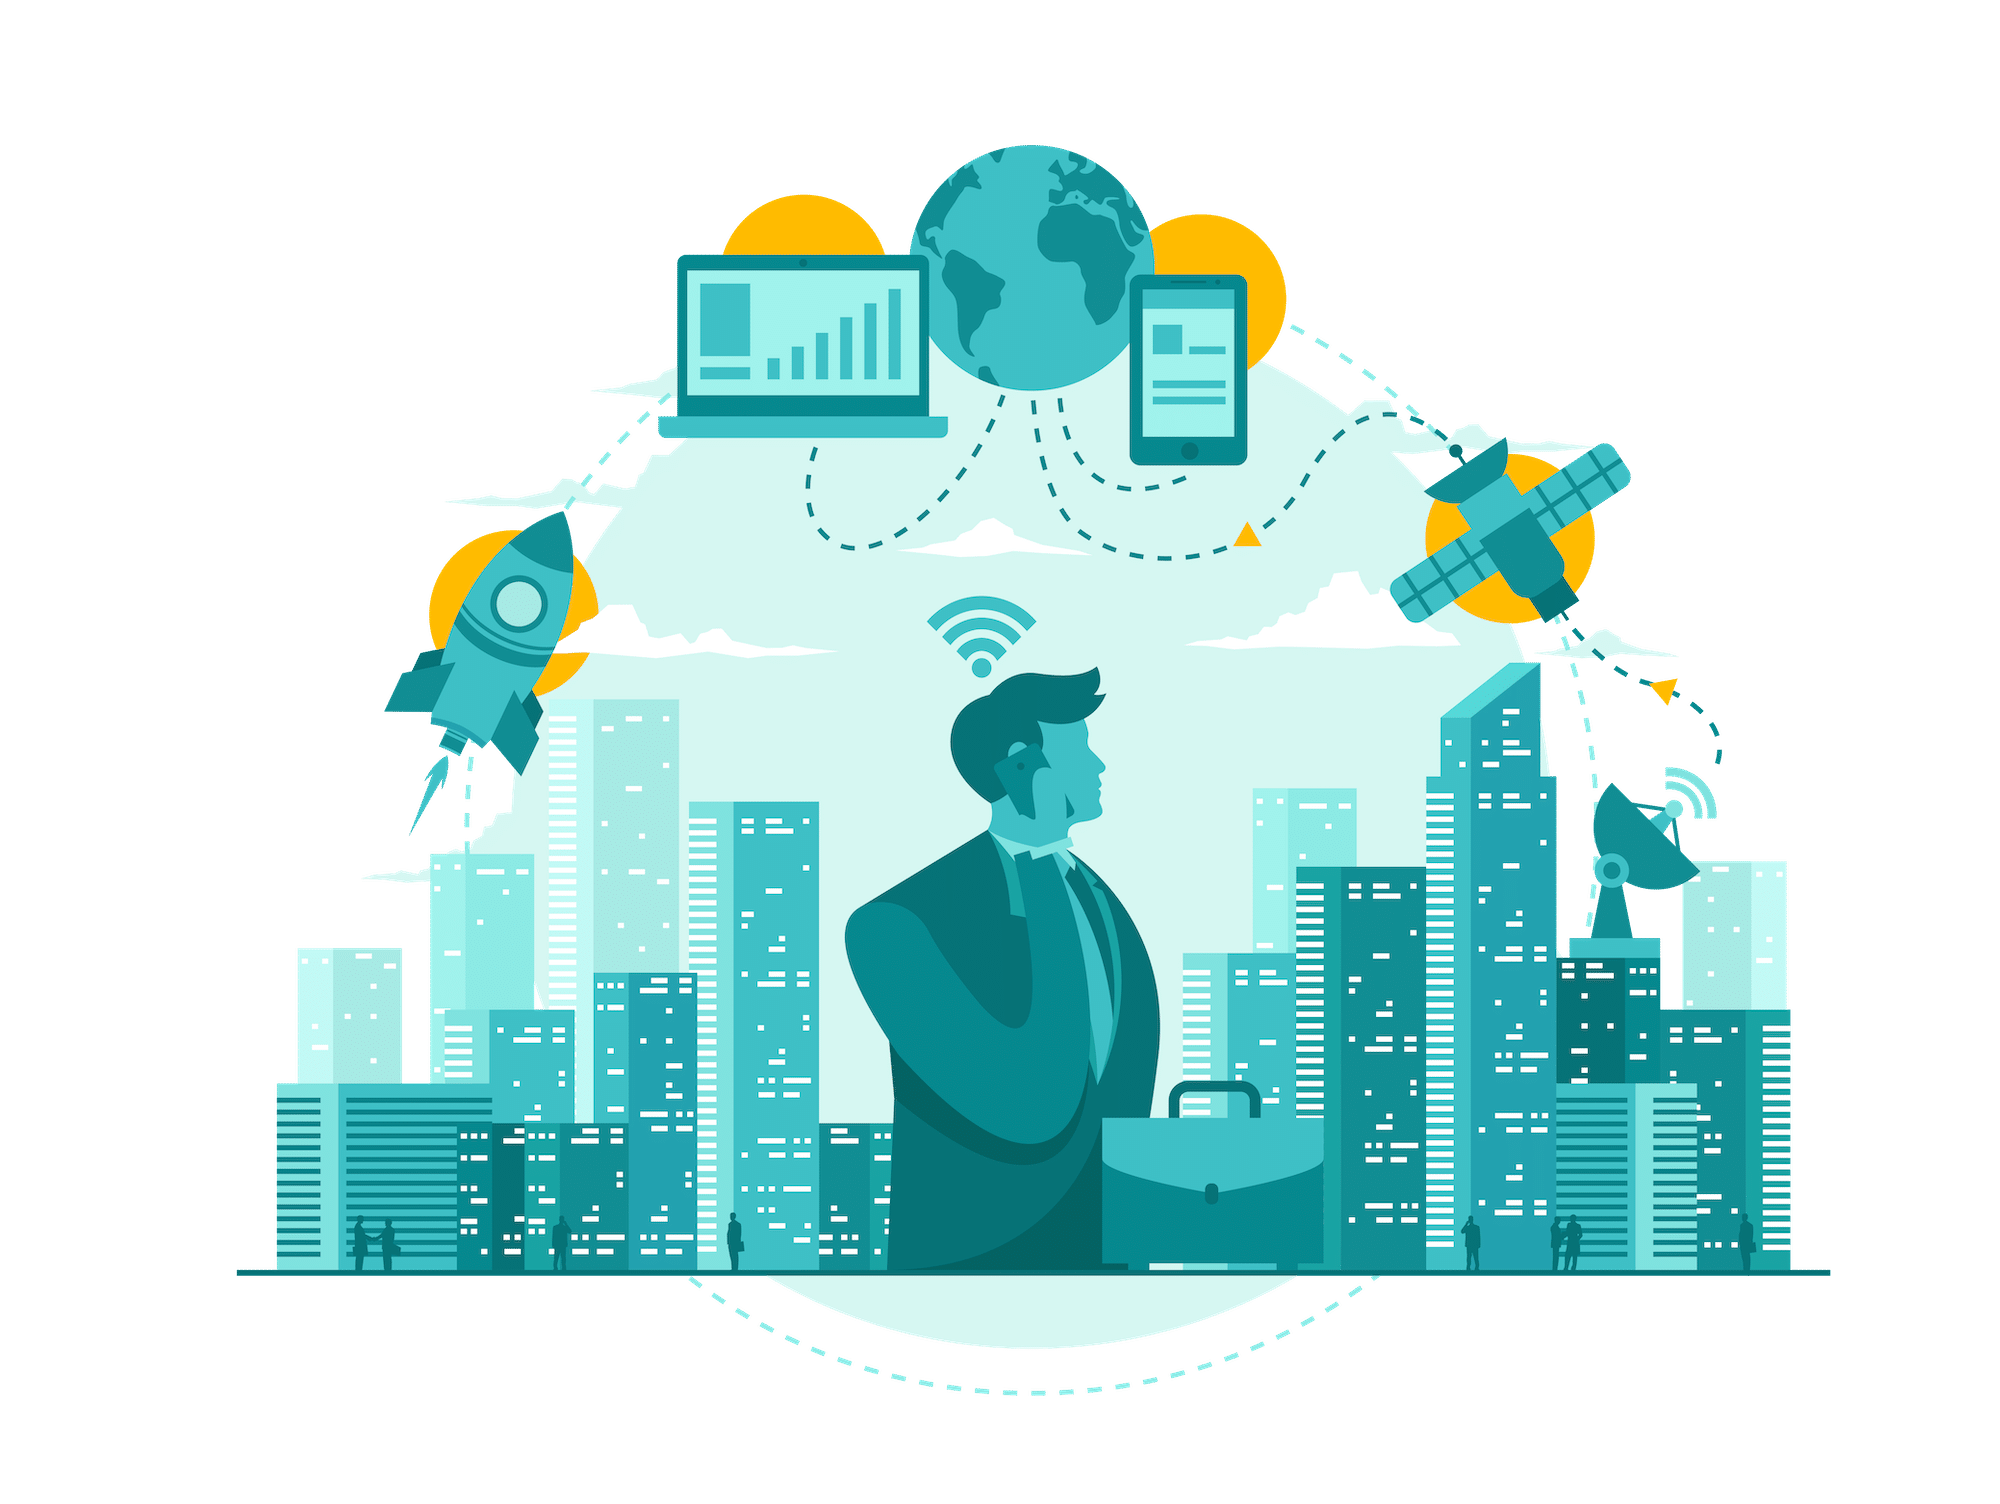 Graphic of man standing in a city with electronics around him